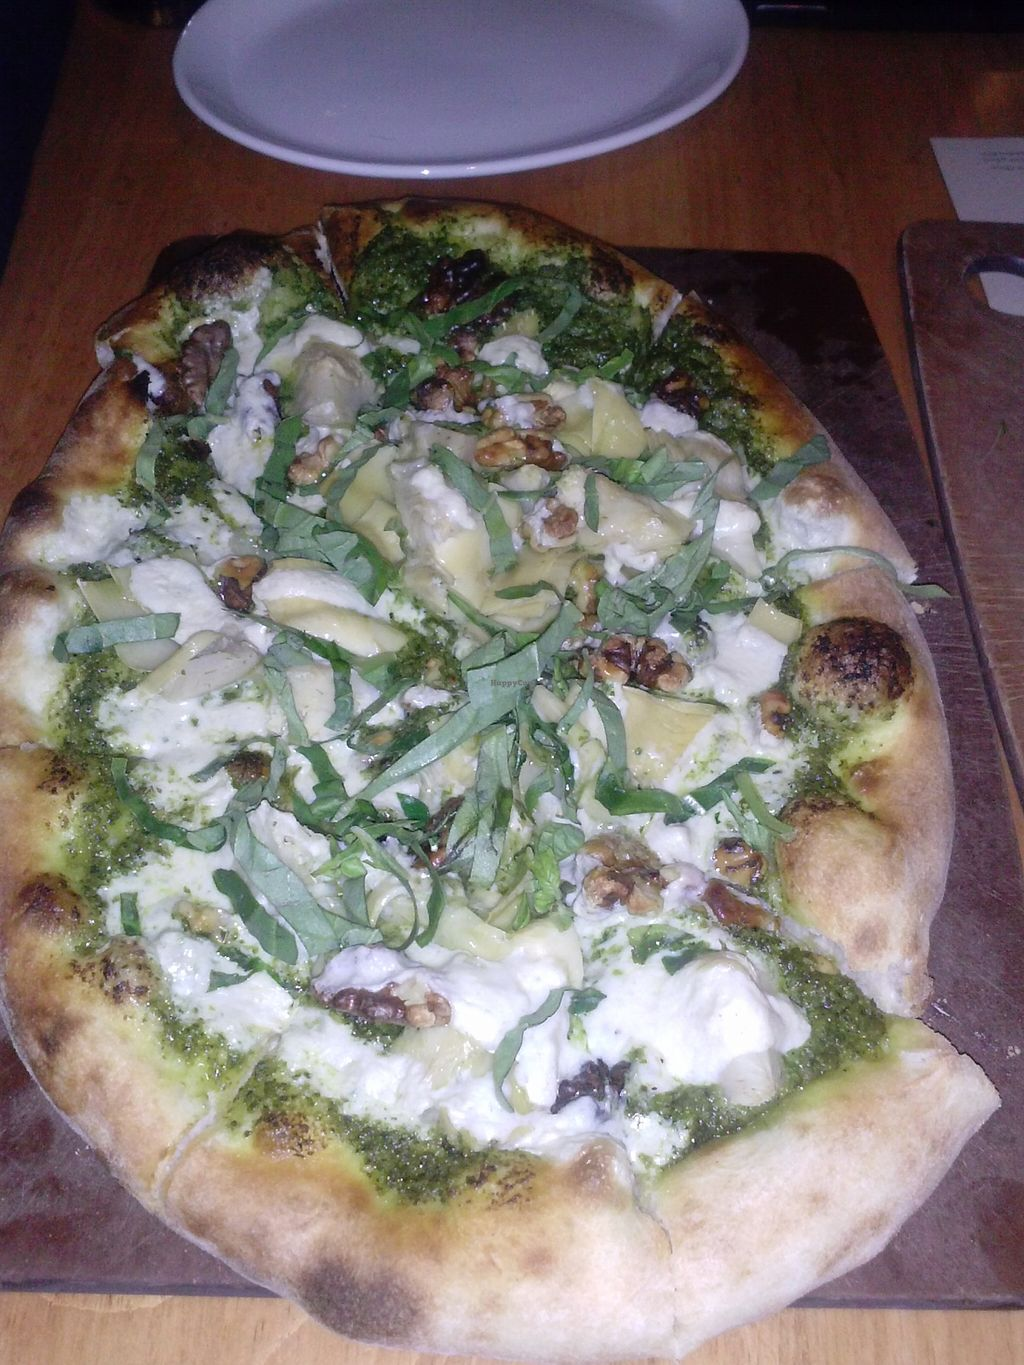 """Photo of Mohawk Bend  by <a href=""""/members/profile/Sonja%20and%20Dirk"""">Sonja and Dirk</a> <br/>pesto pizza <br/> January 1, 2016  - <a href='/contact/abuse/image/27727/130640'>Report</a>"""